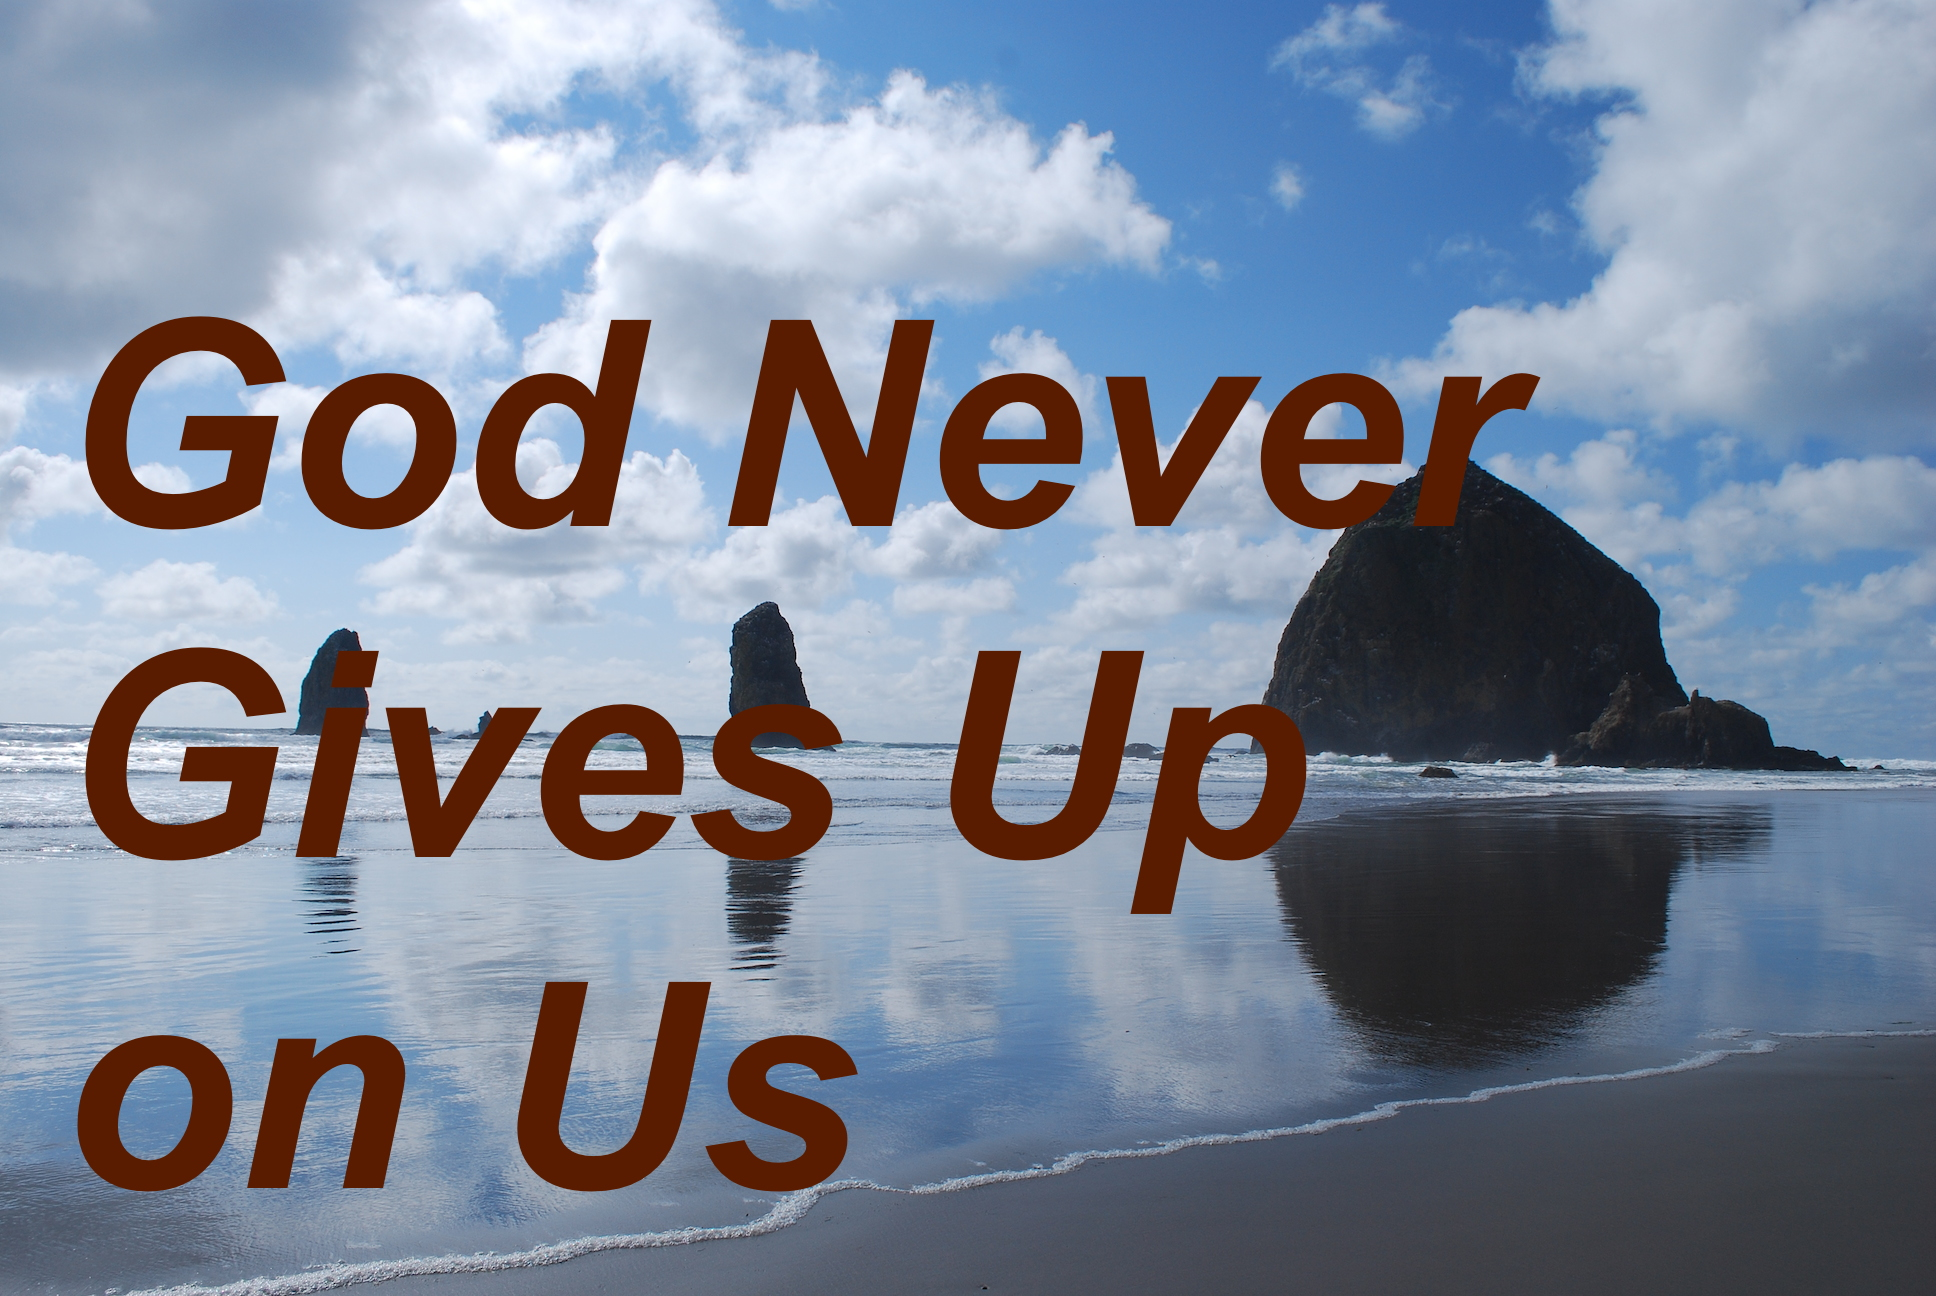 God Never Gives Up on Us